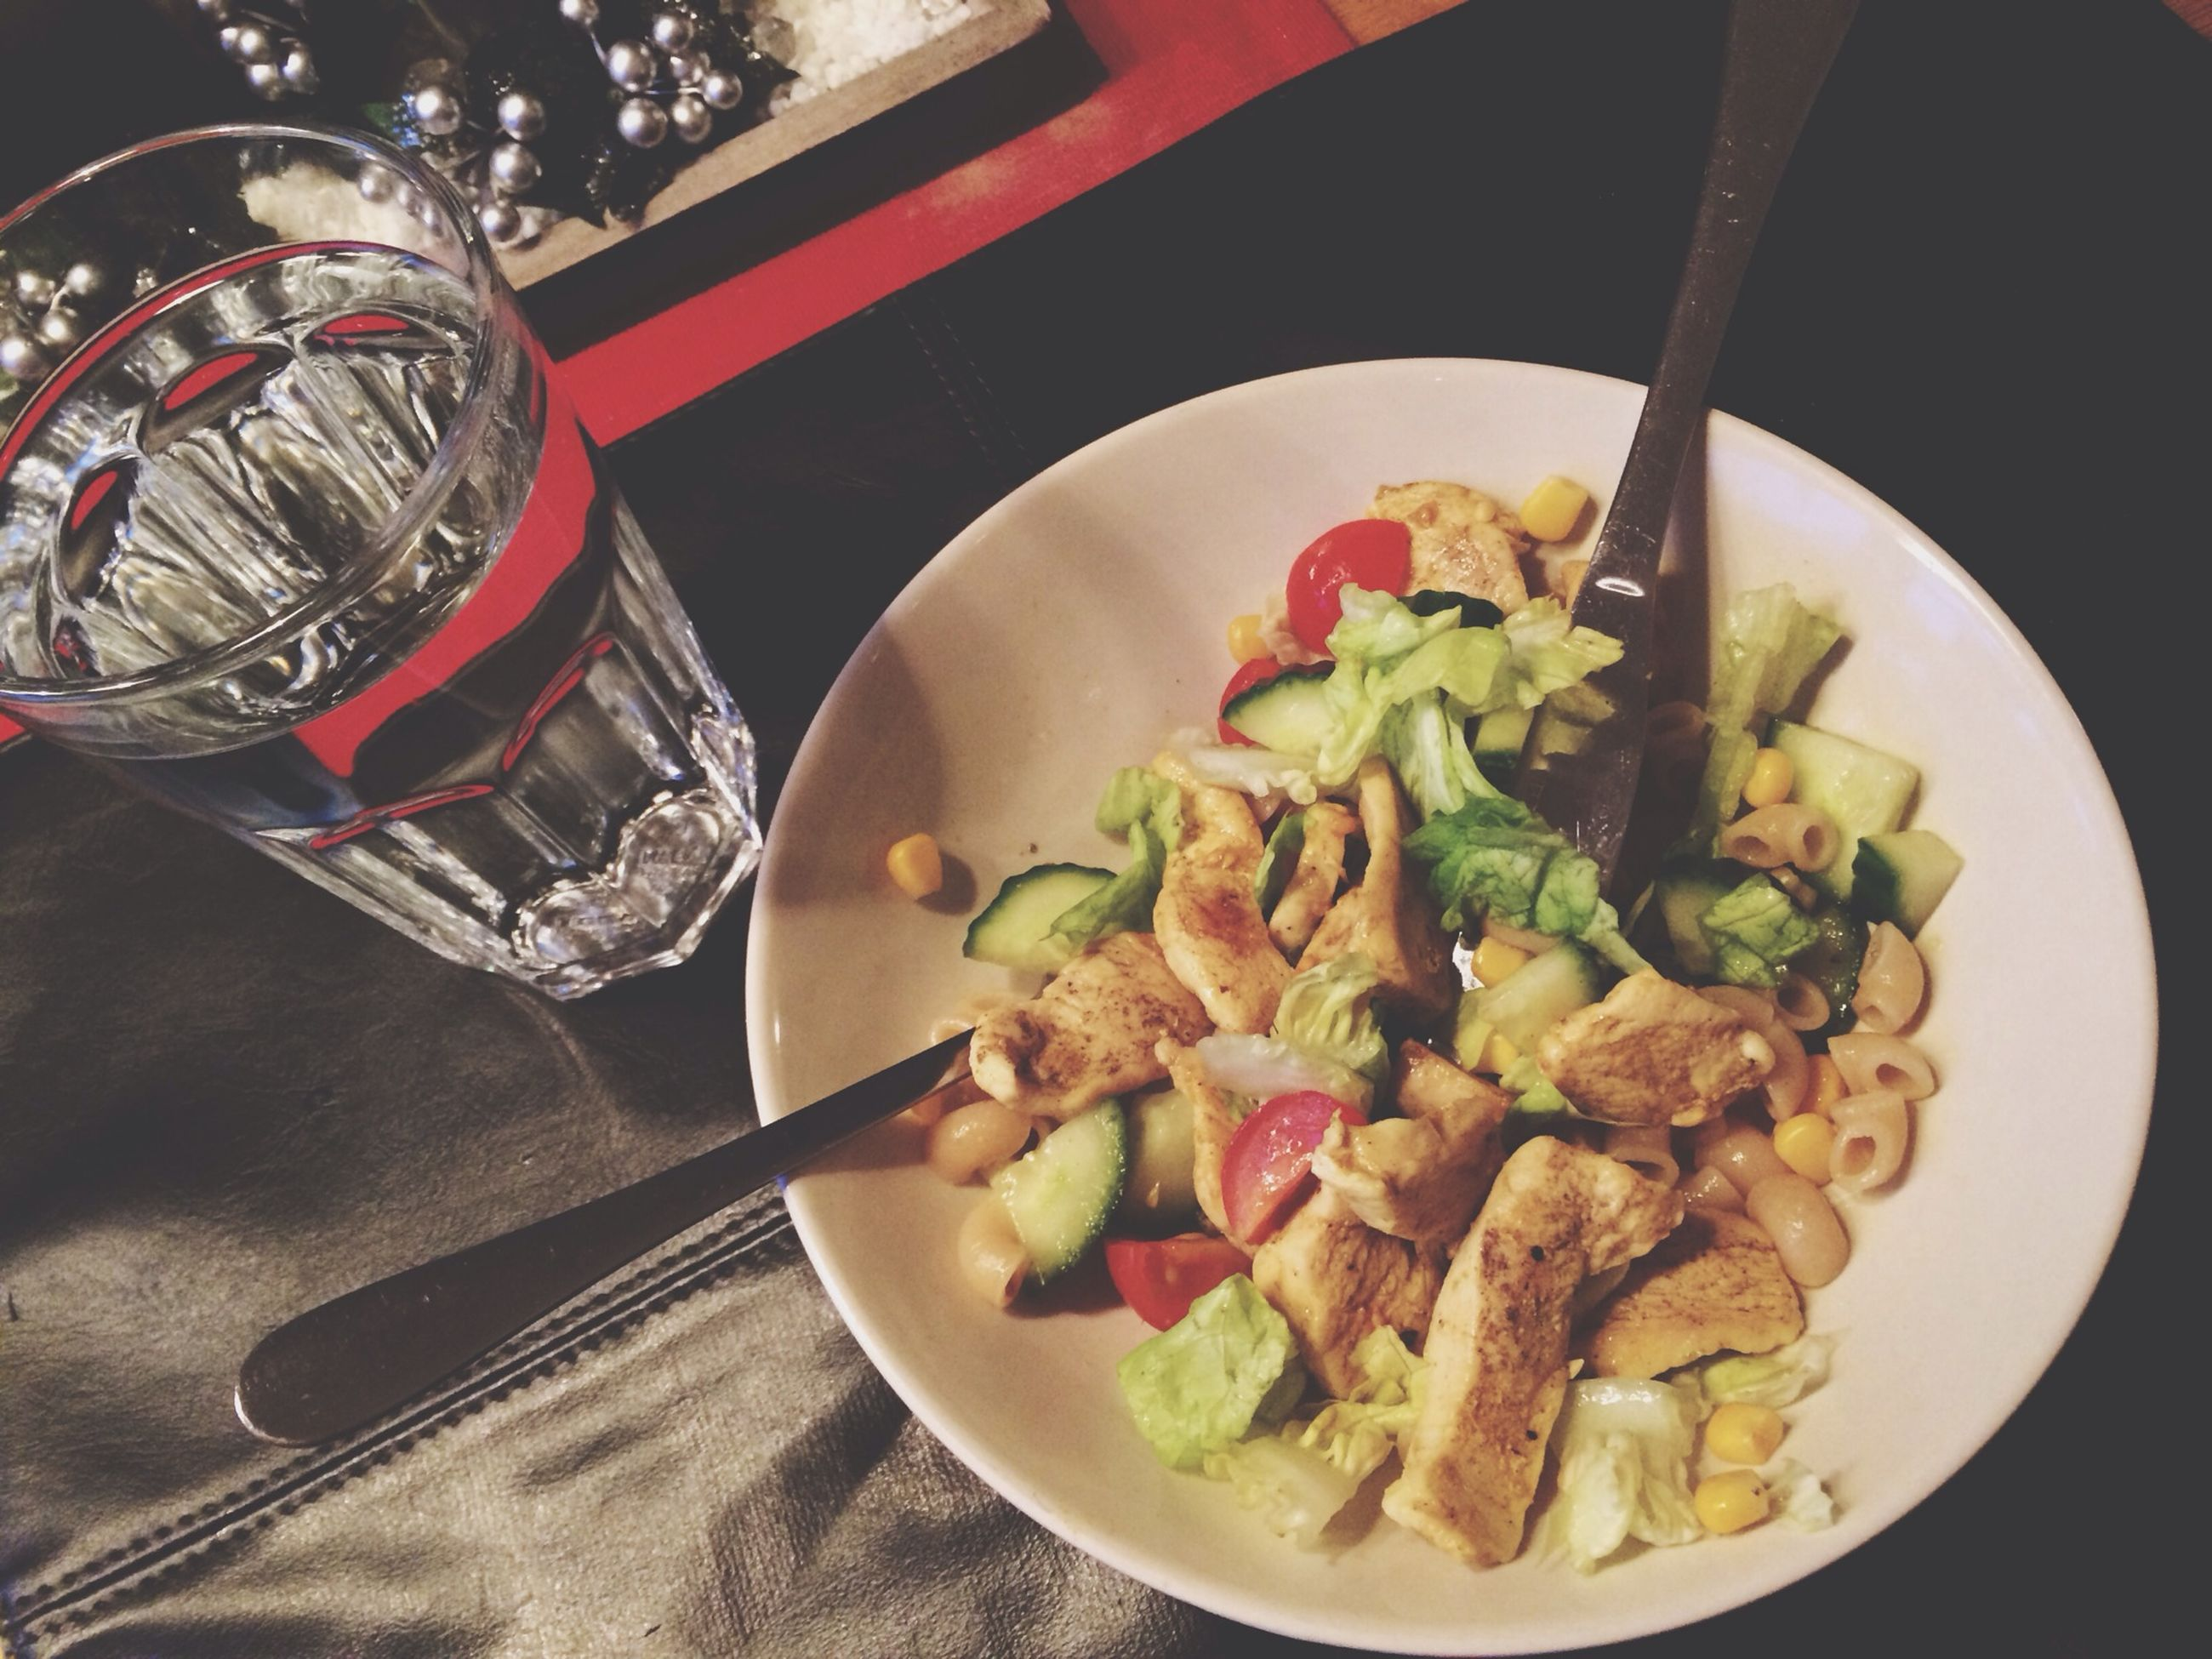 food and drink, food, indoors, freshness, table, ready-to-eat, plate, healthy eating, bowl, still life, serving size, meal, close-up, high angle view, part of, indulgence, spoon, person